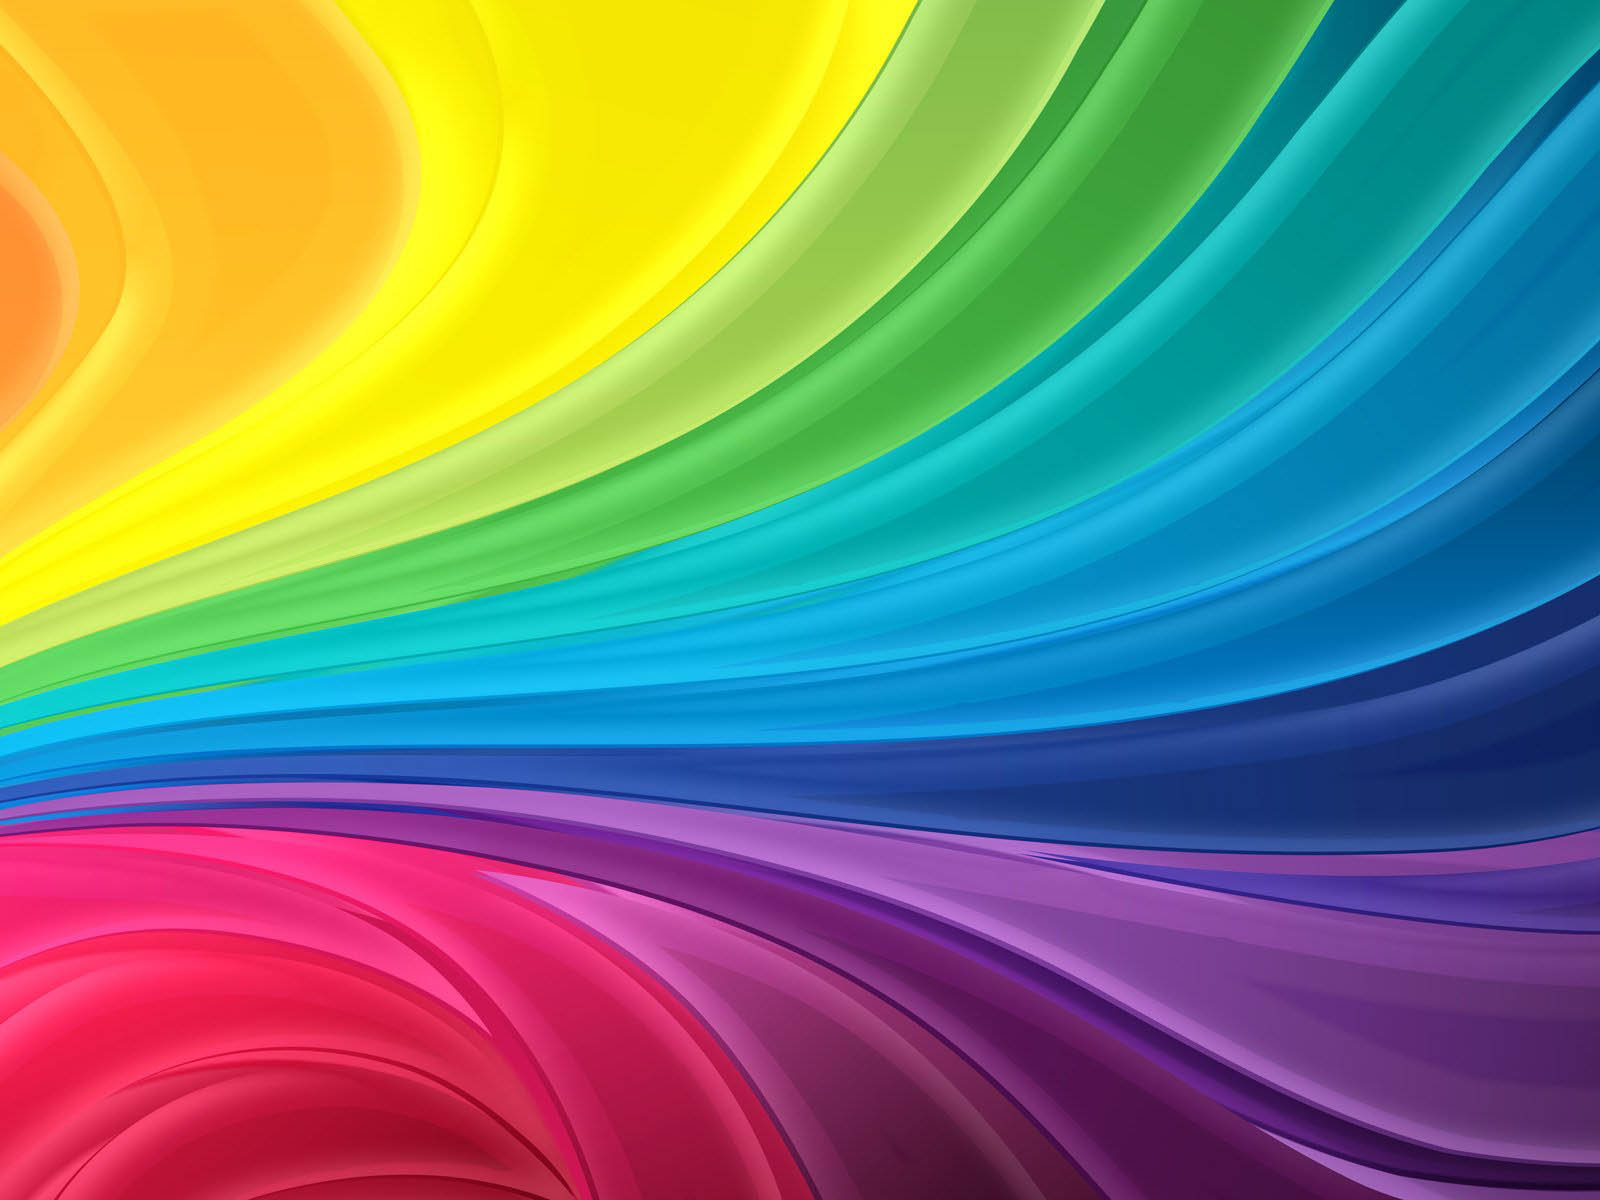 abstract rainbow background wallpaper black - photo #24